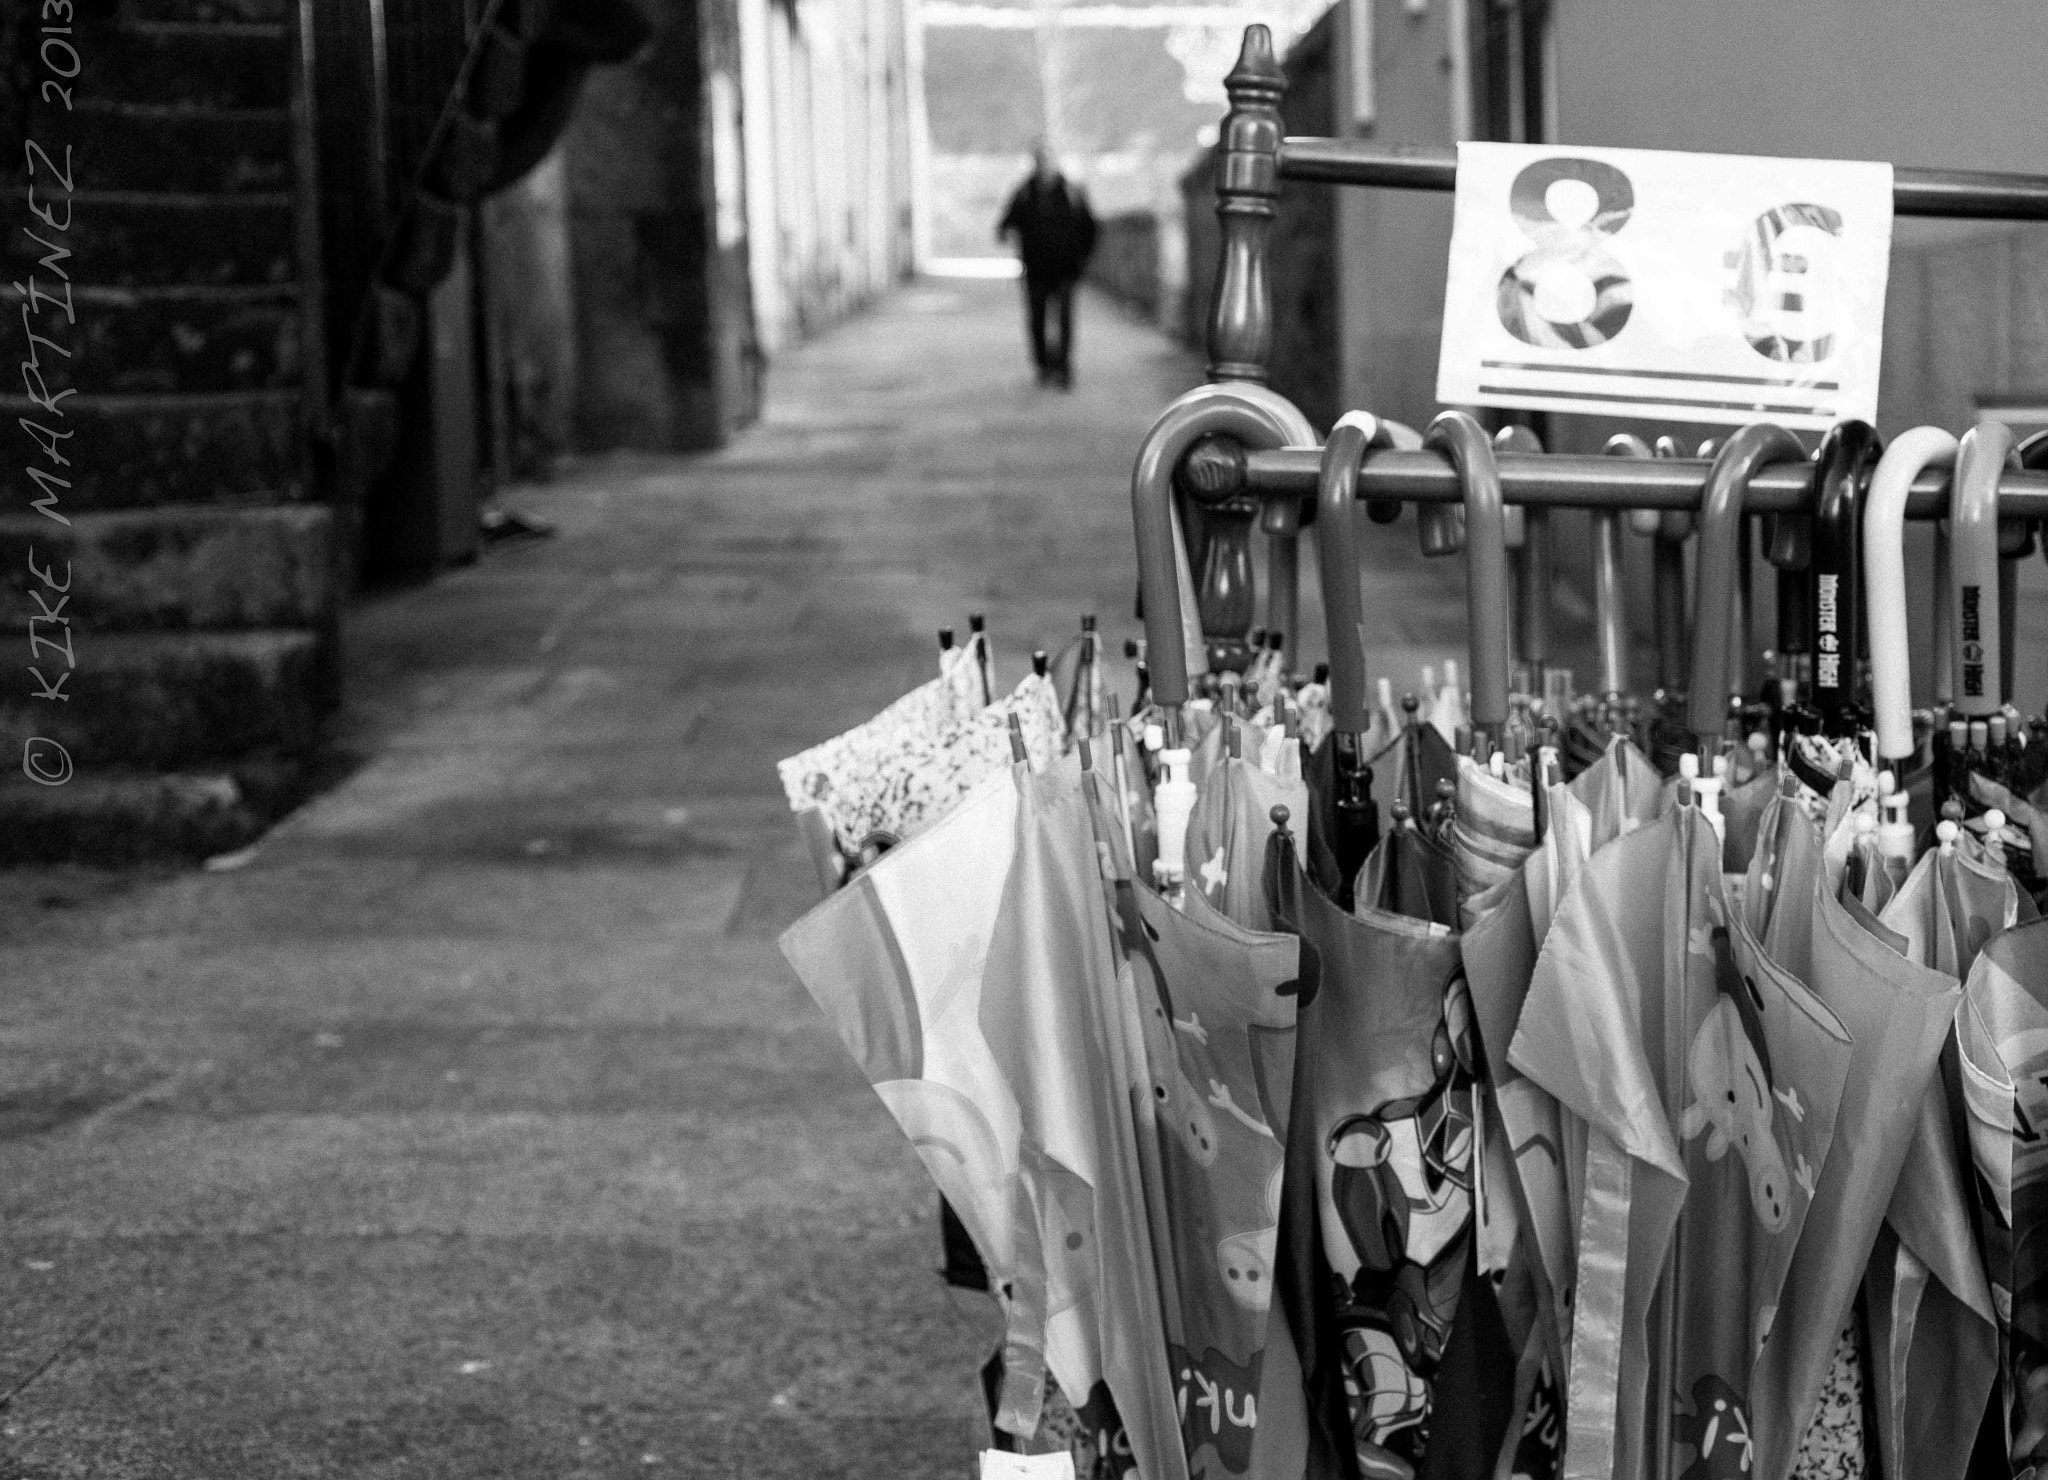 Photograph LOOKING FOR UMBRELLAS by Kike Martínez  on 500px